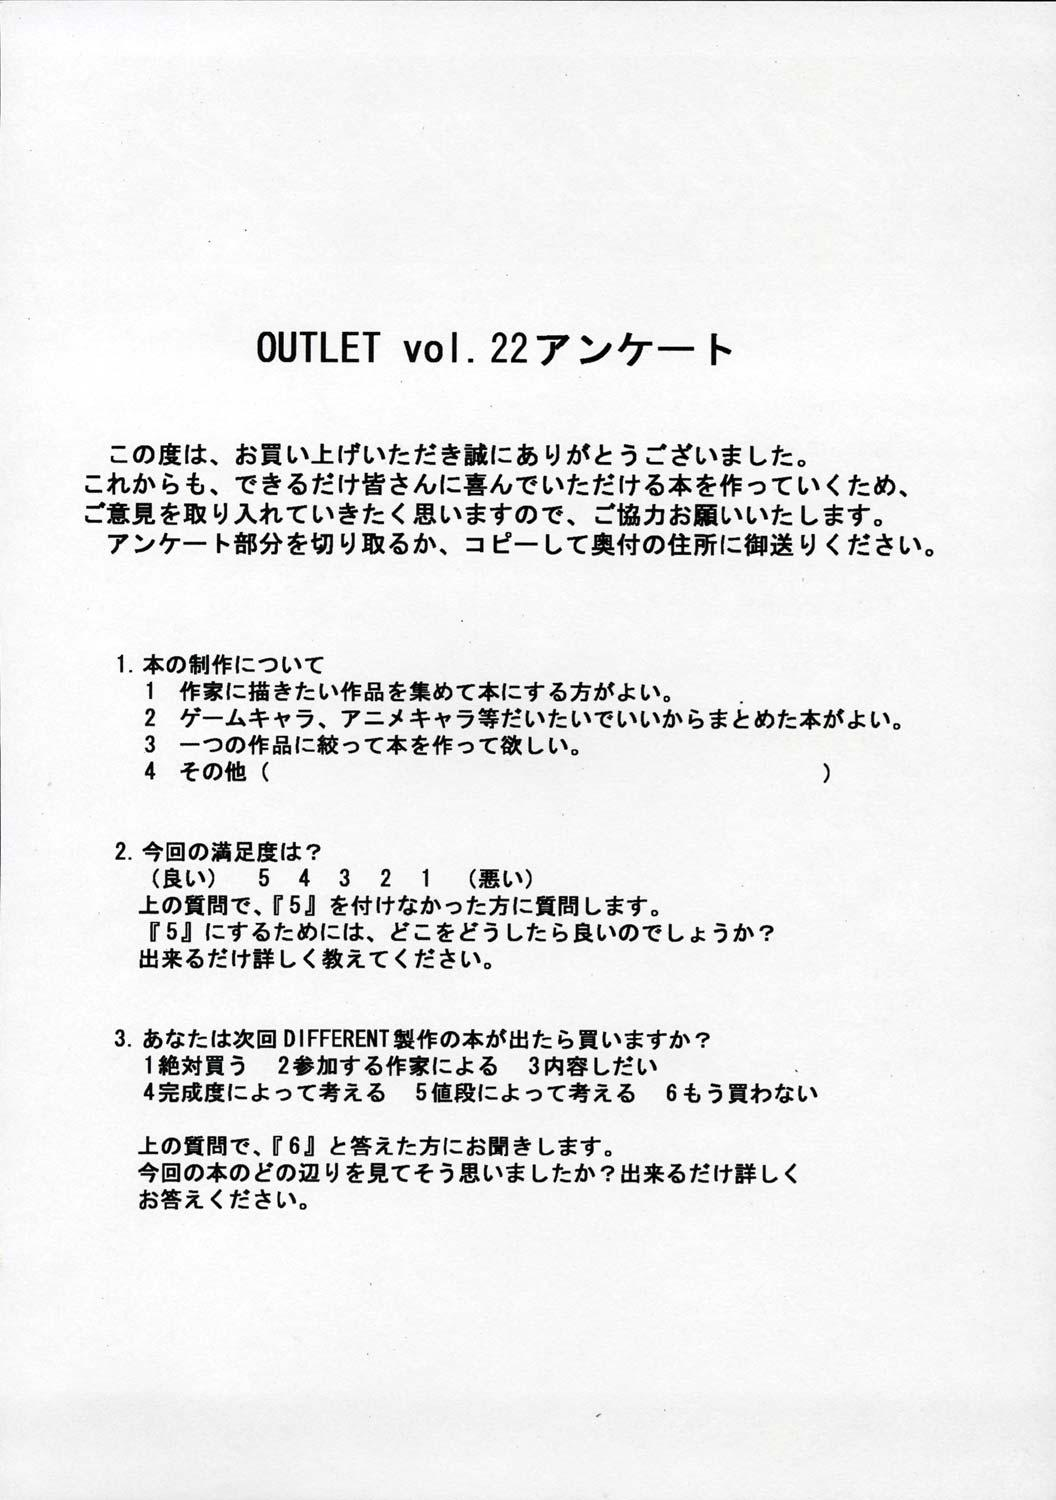 OUTLET 22 46